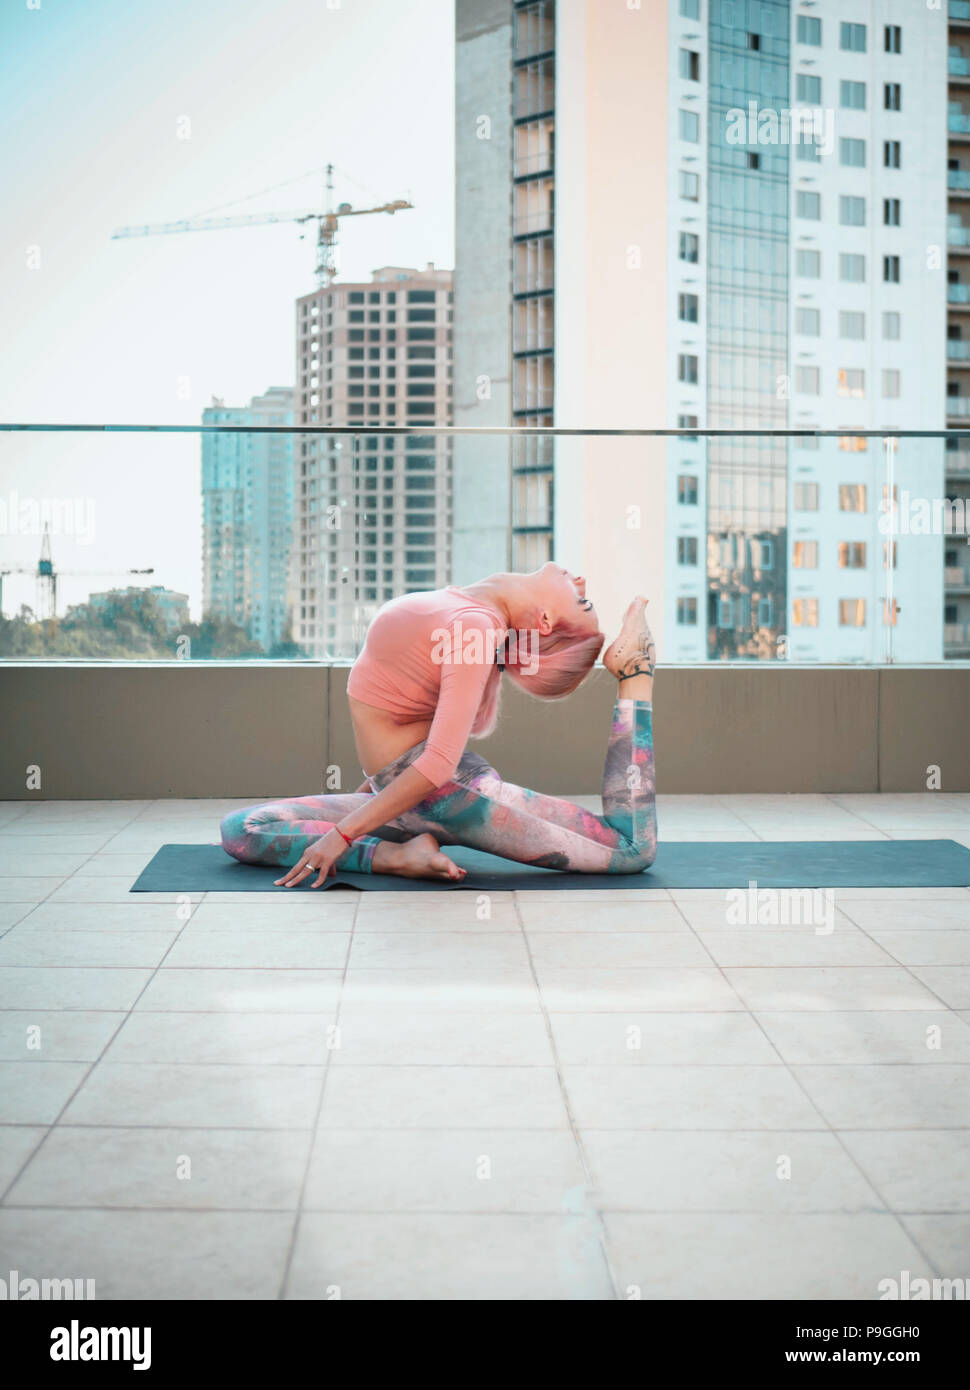 Young slim woman with pink dyed hair doing yoga practice on terrace of modern city. Girl keeping fit and healthy body relaxing on rooftop during practice pose - Stock Image